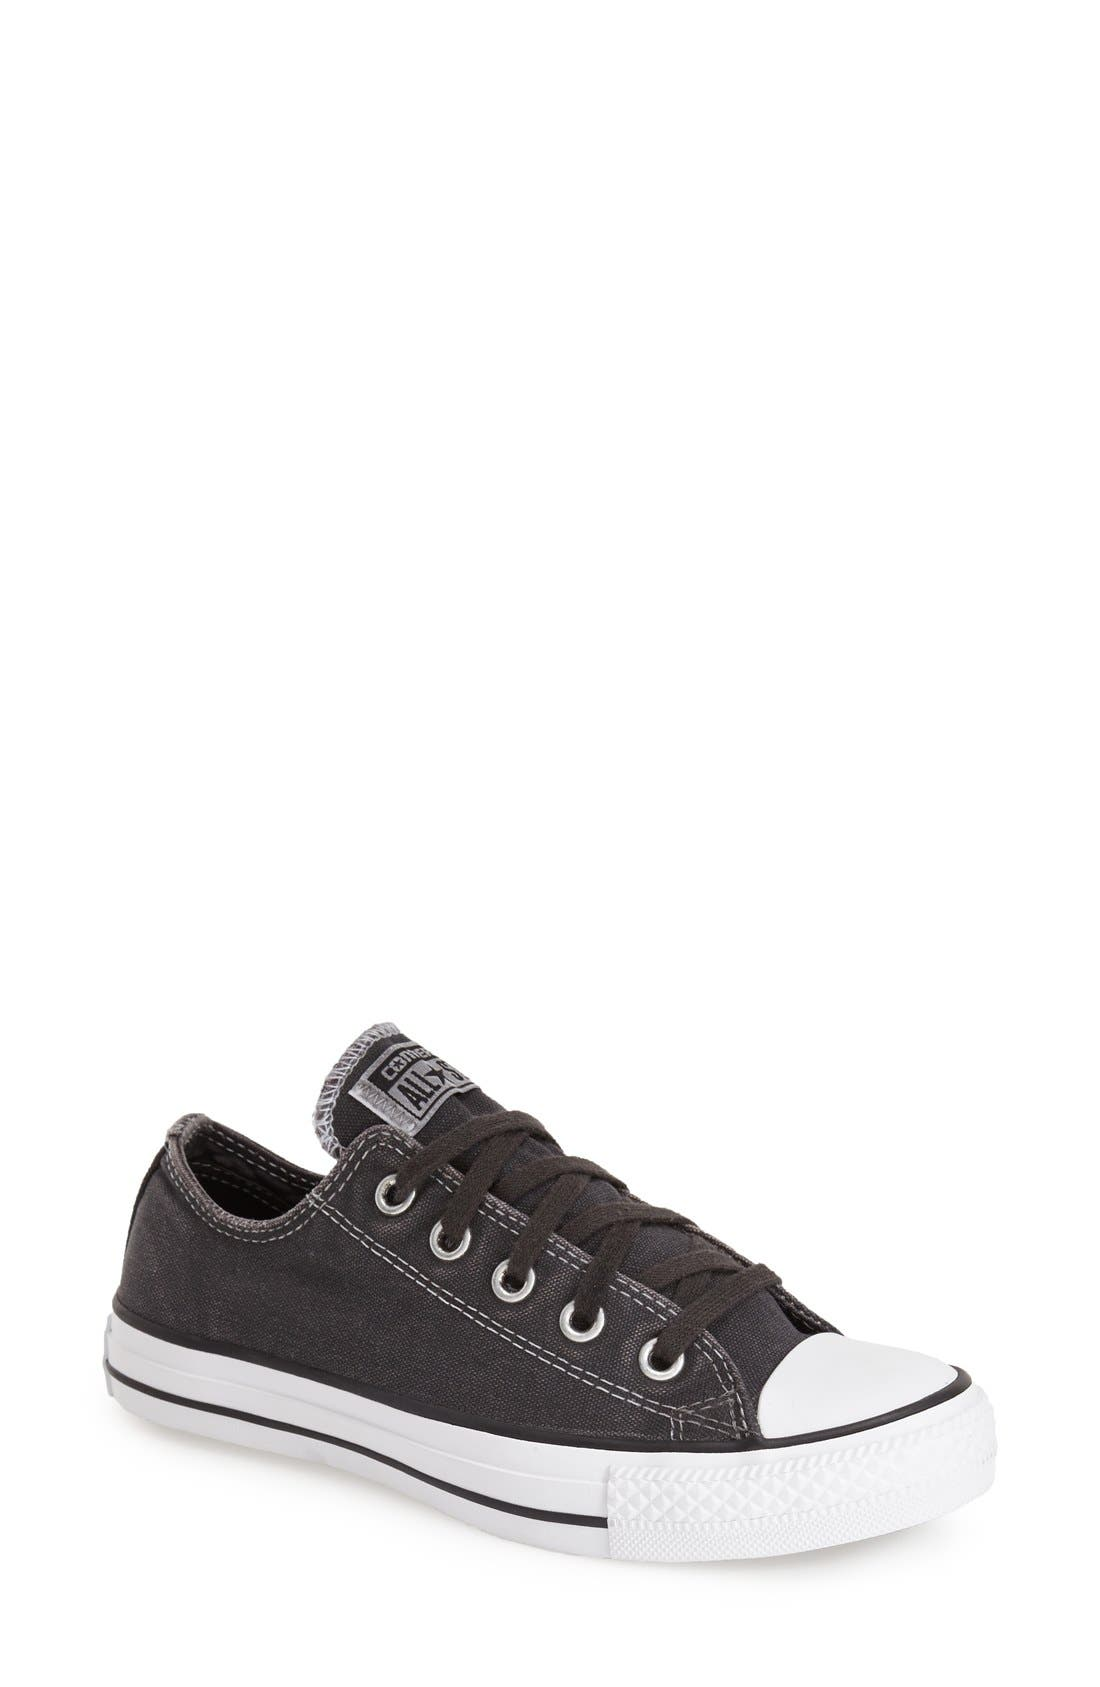 Alternate Image 1 Selected - Converse Chuck Taylor® All Star® Low Top Sneaker (Women)